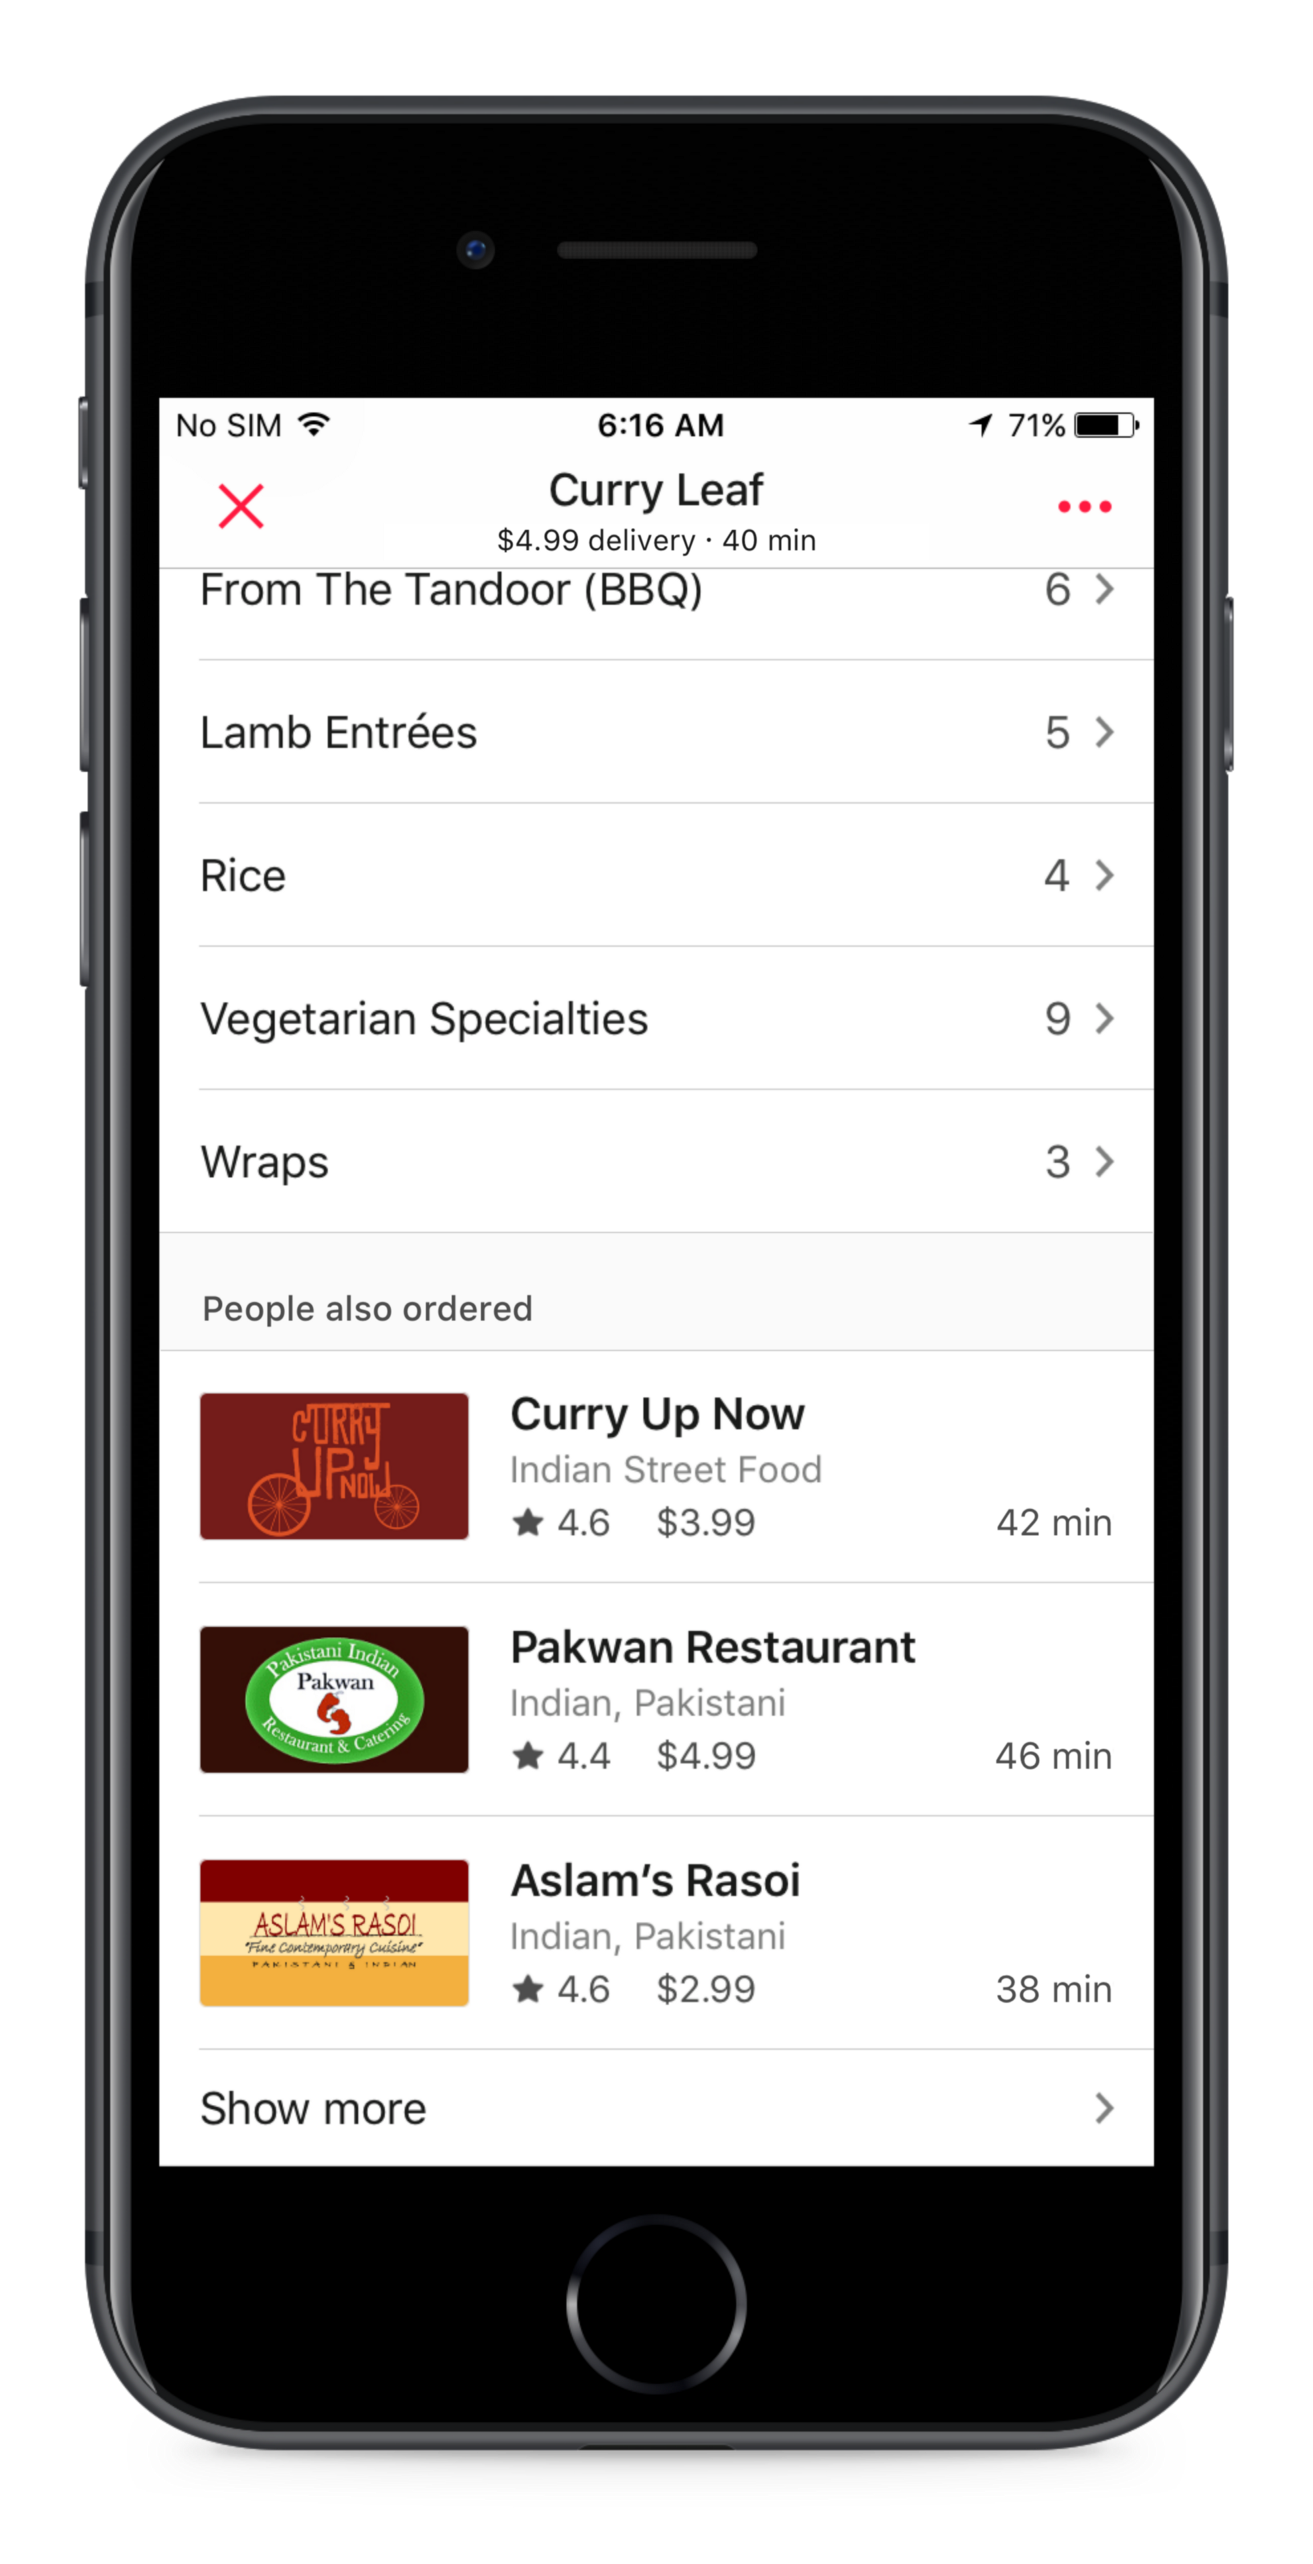 New features to better find, track, and rate your deliveries